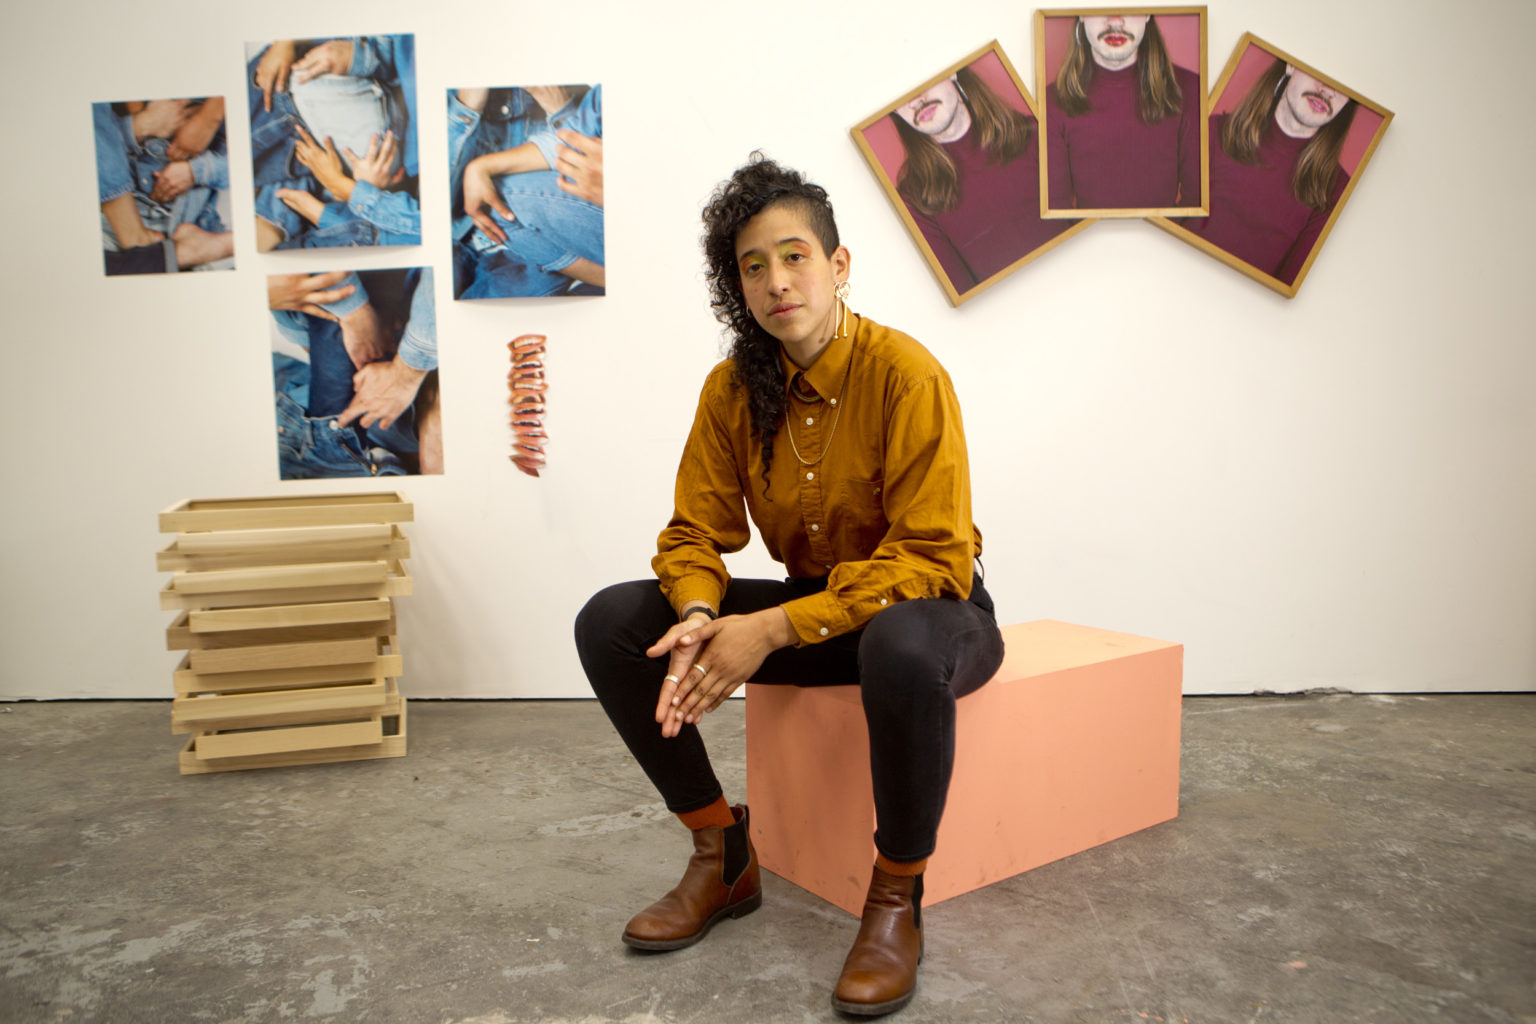 Marcela Pardo Ariza is among the artists whose work appears in Bay Area Now 8, opening Saturday at Yerba Buena Center for the  Arts. (Courtesy photo)